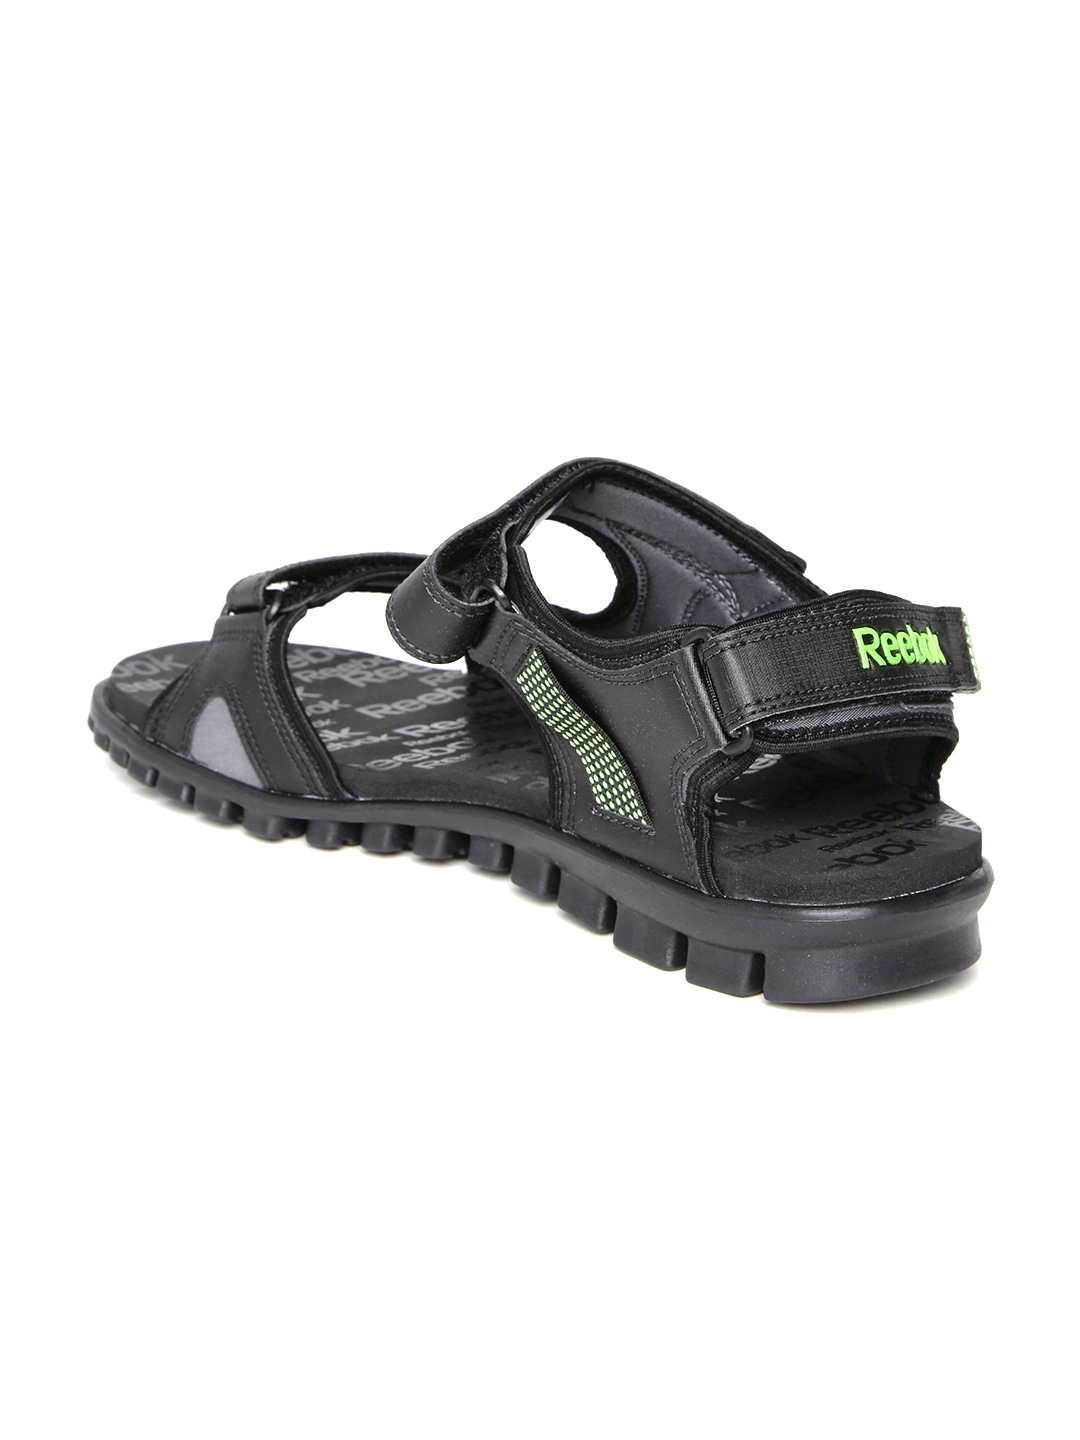 7674b6e703c6 Buy Reebok Men Black Reeflex Sports Sandals - Sports Sandals for Men ...